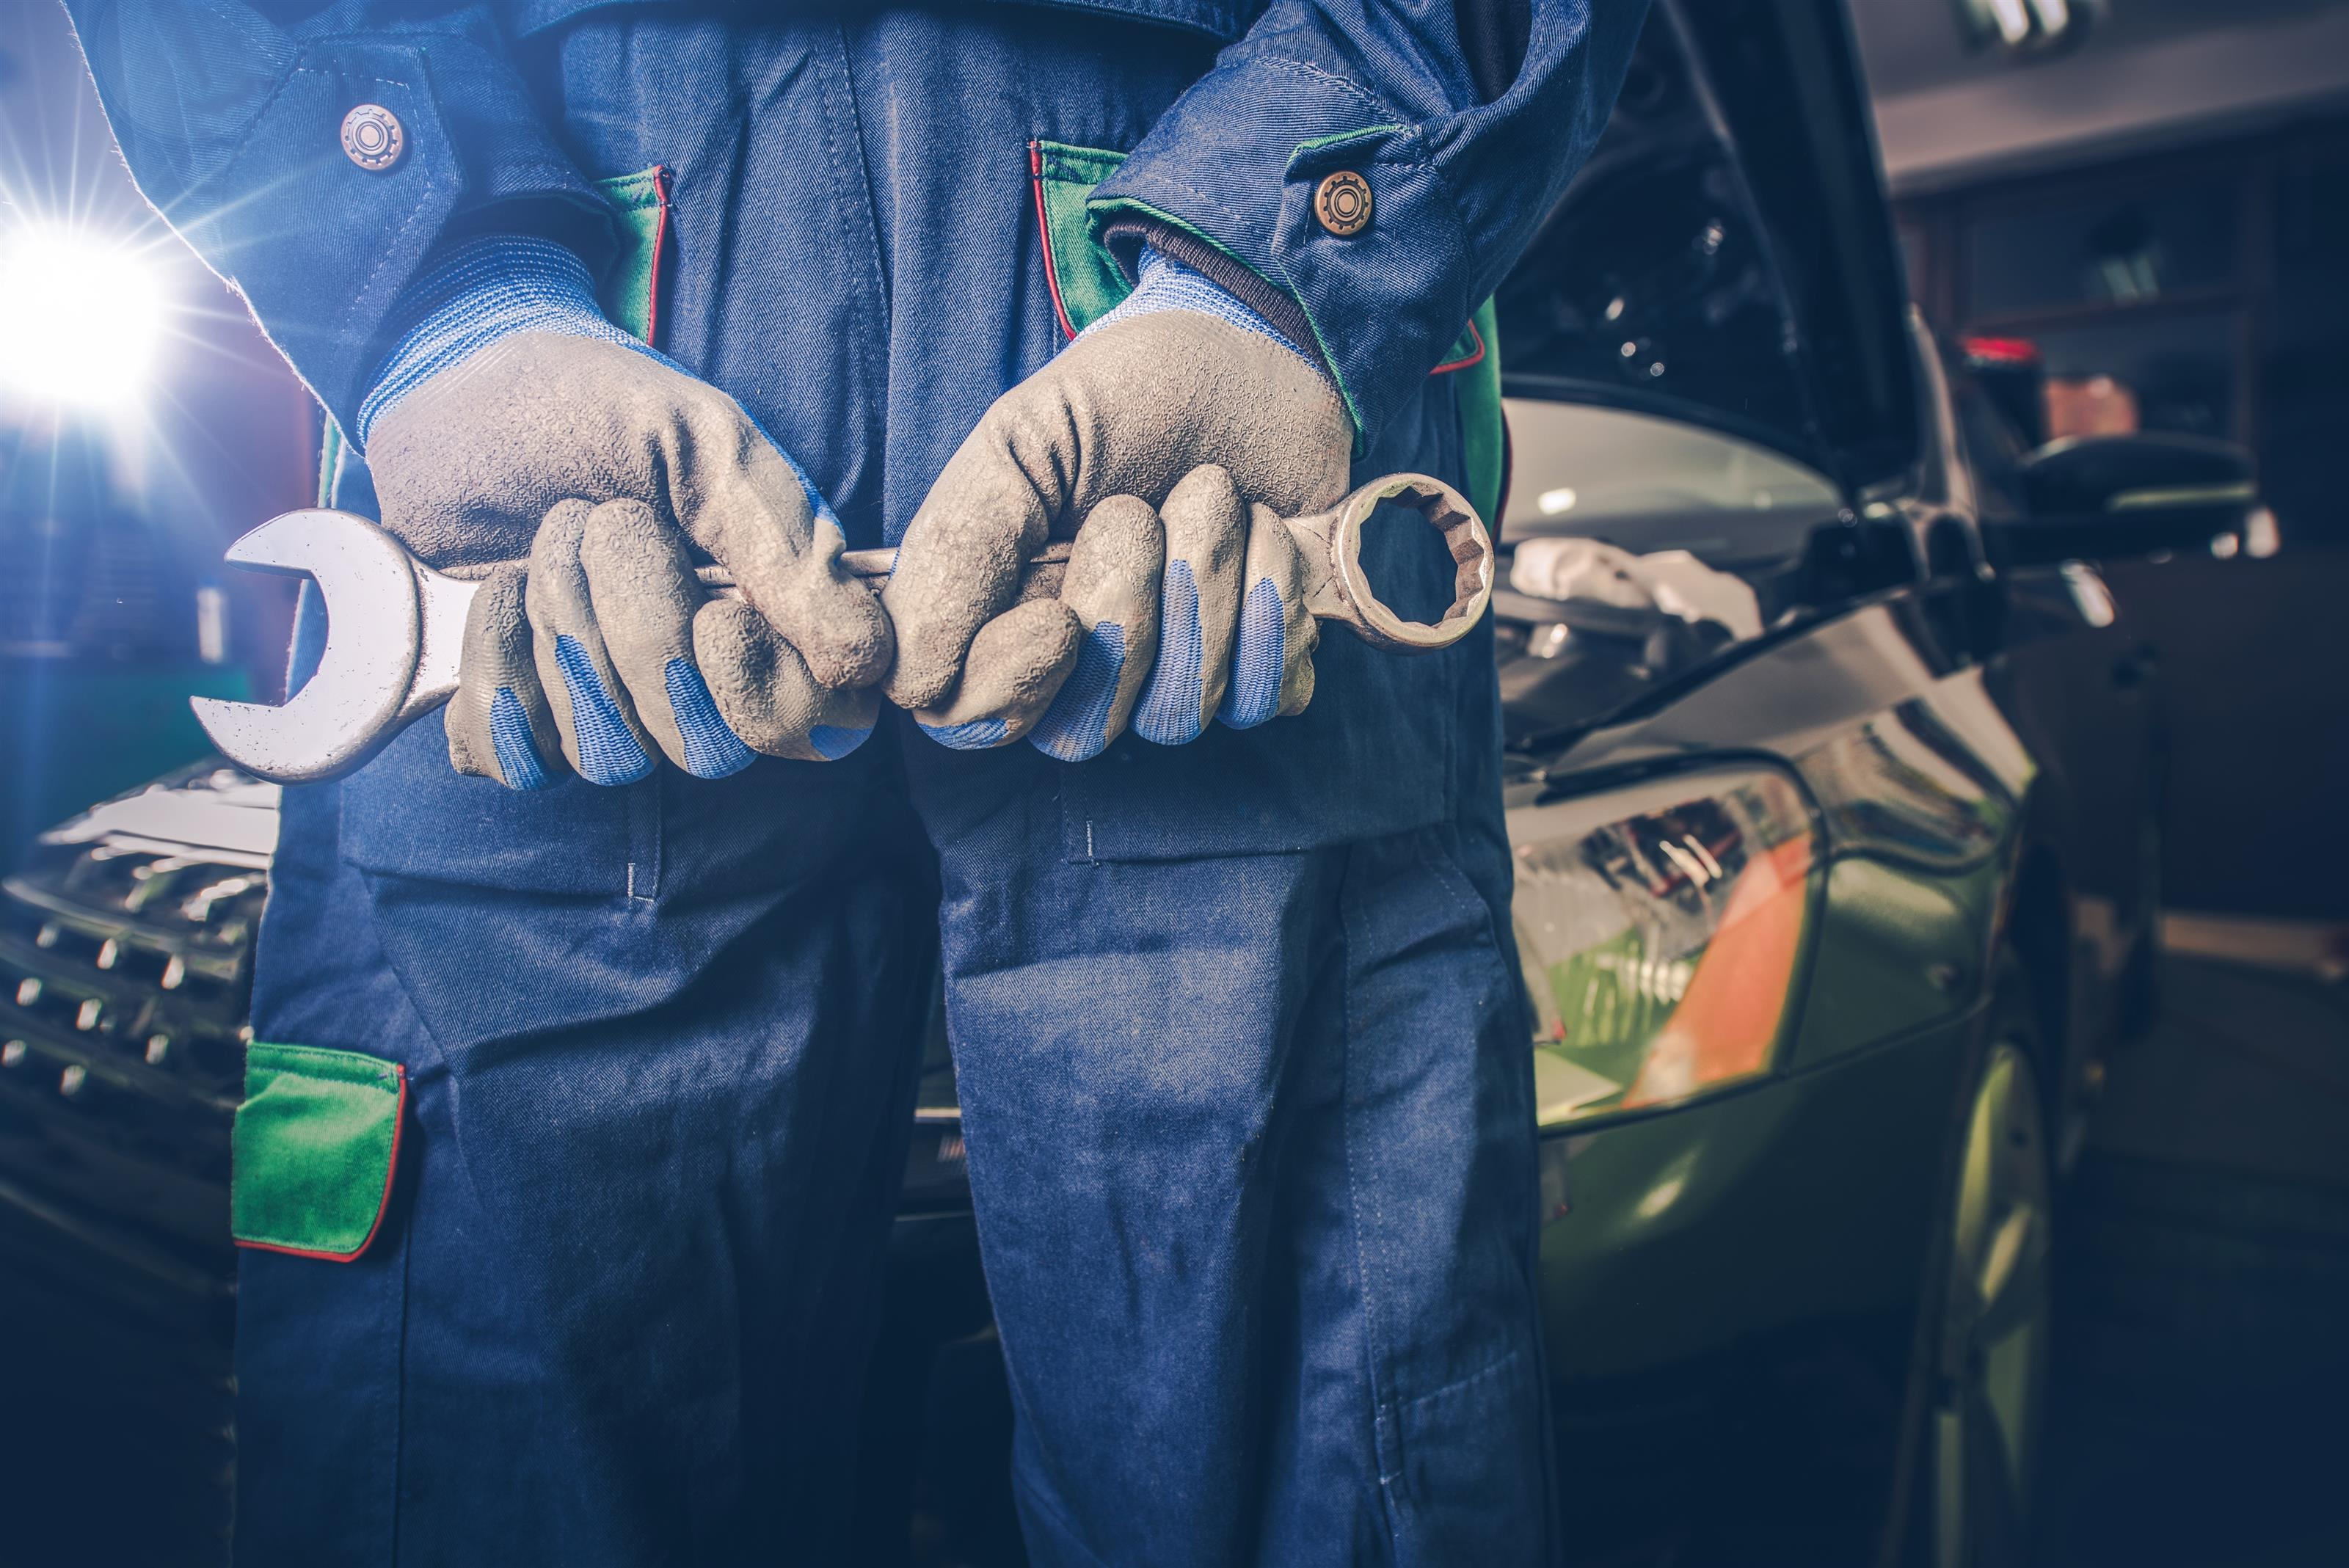 technician wearing gloves holding a wrench